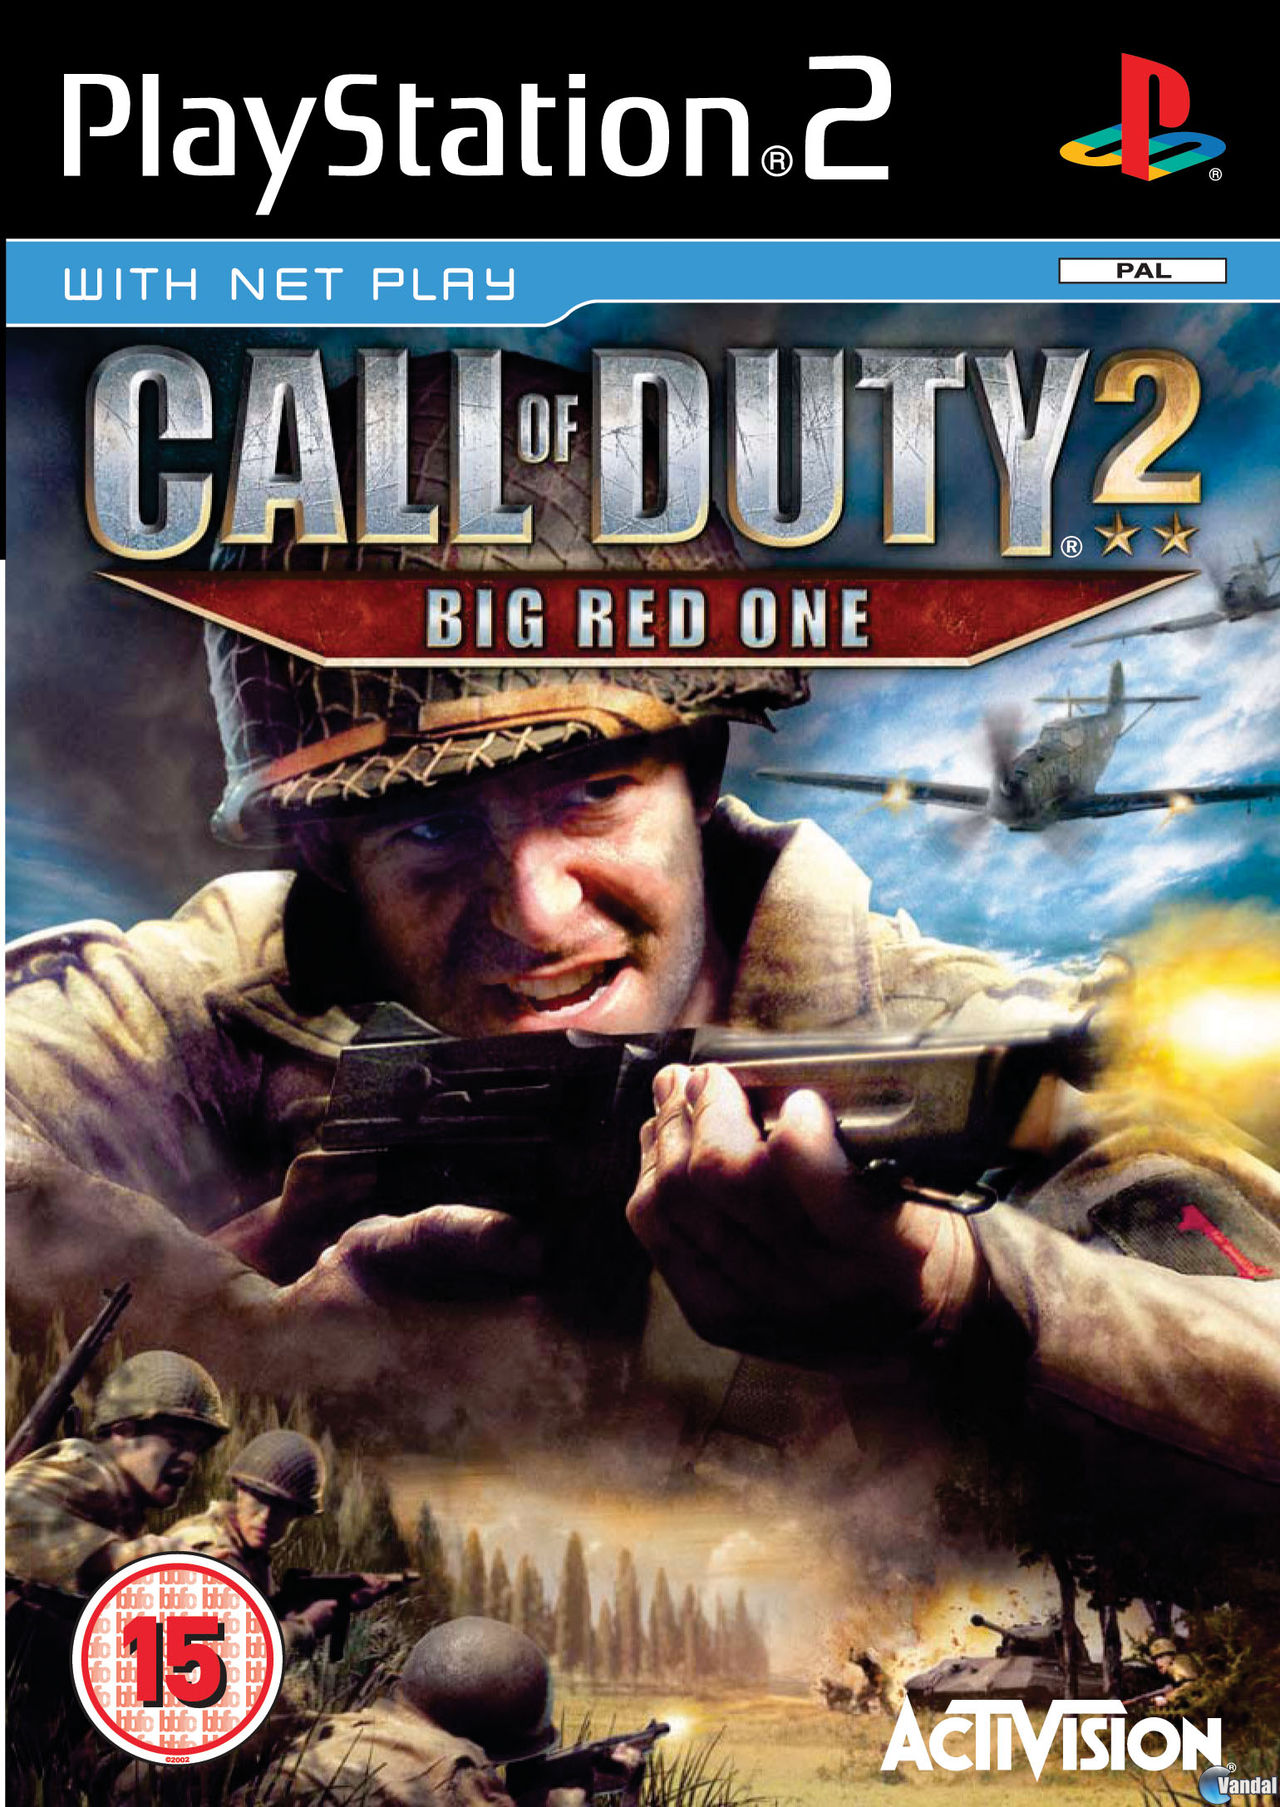 Imagen 15 de Call of Duty 2: Big Red One para PlayStation 2